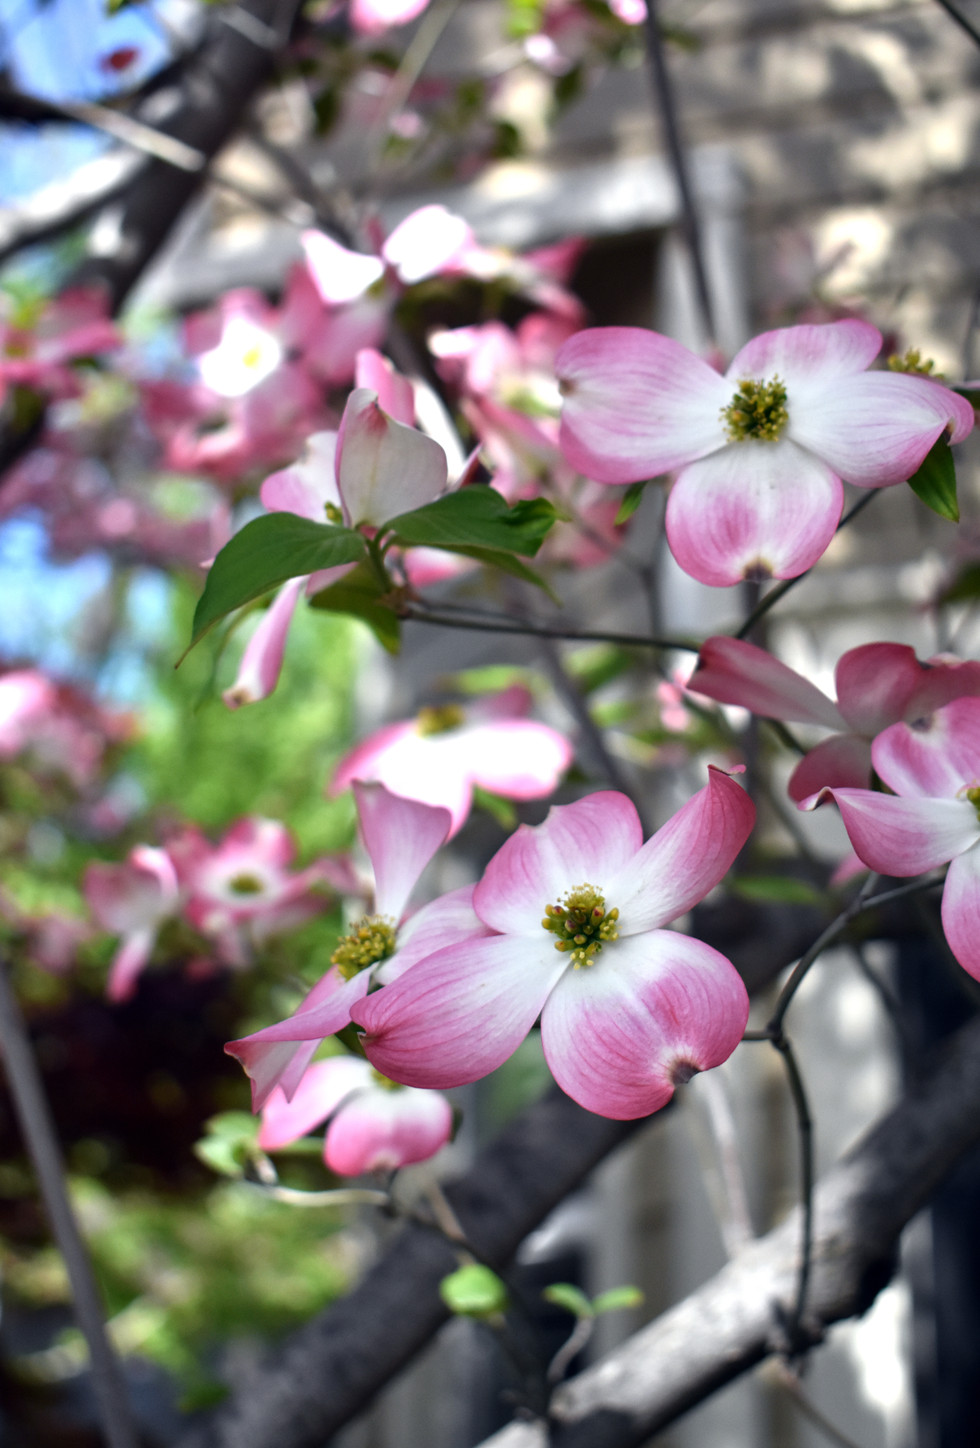 Dogwood blooms in spring, at a residence close by